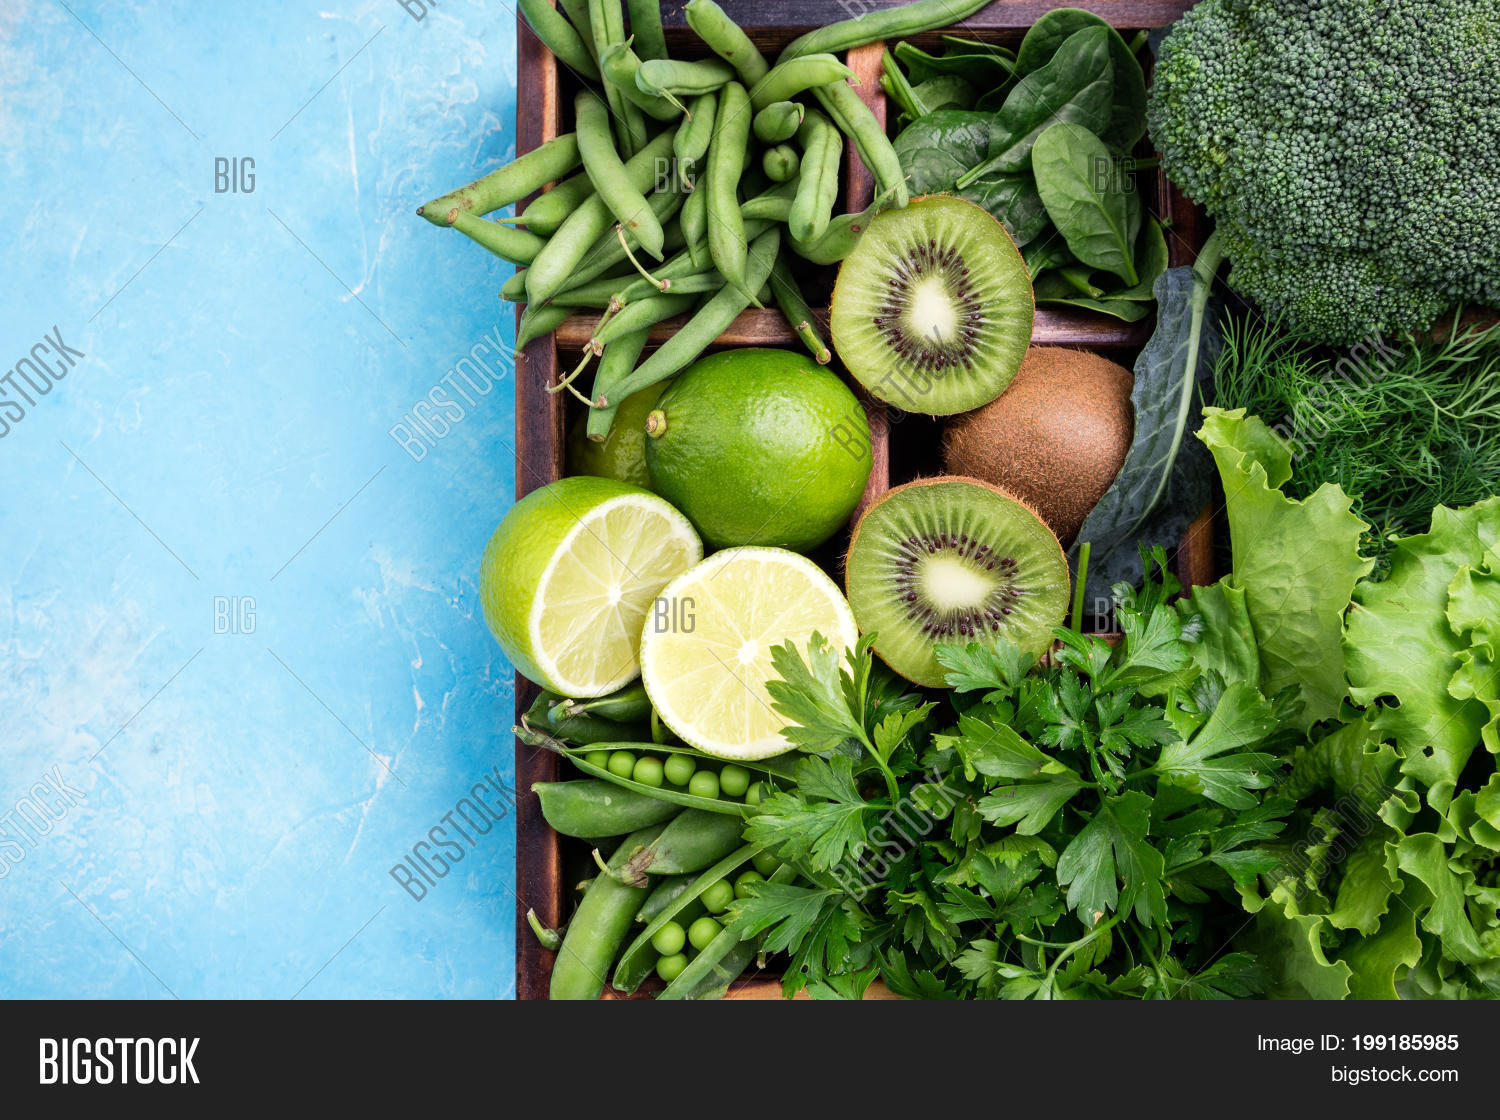 agricultural,apple,asparagus,background,beans,box,broccoli,cabbage,chlorophyll,citrus,cooking,copy,crop,diet,dietary,dieting,eating,farmers,food,fruit,garden,green,grocery,harvest,health,healthy,herb,ingredient,kale,kiwi,leaf,lettuce,lifestyle,lime,nutrition,organic,parsley,peas,salad,smoothie,space,spinach,top,variety,vegan,vegetables,vegetarian,veggie,view,vitamin